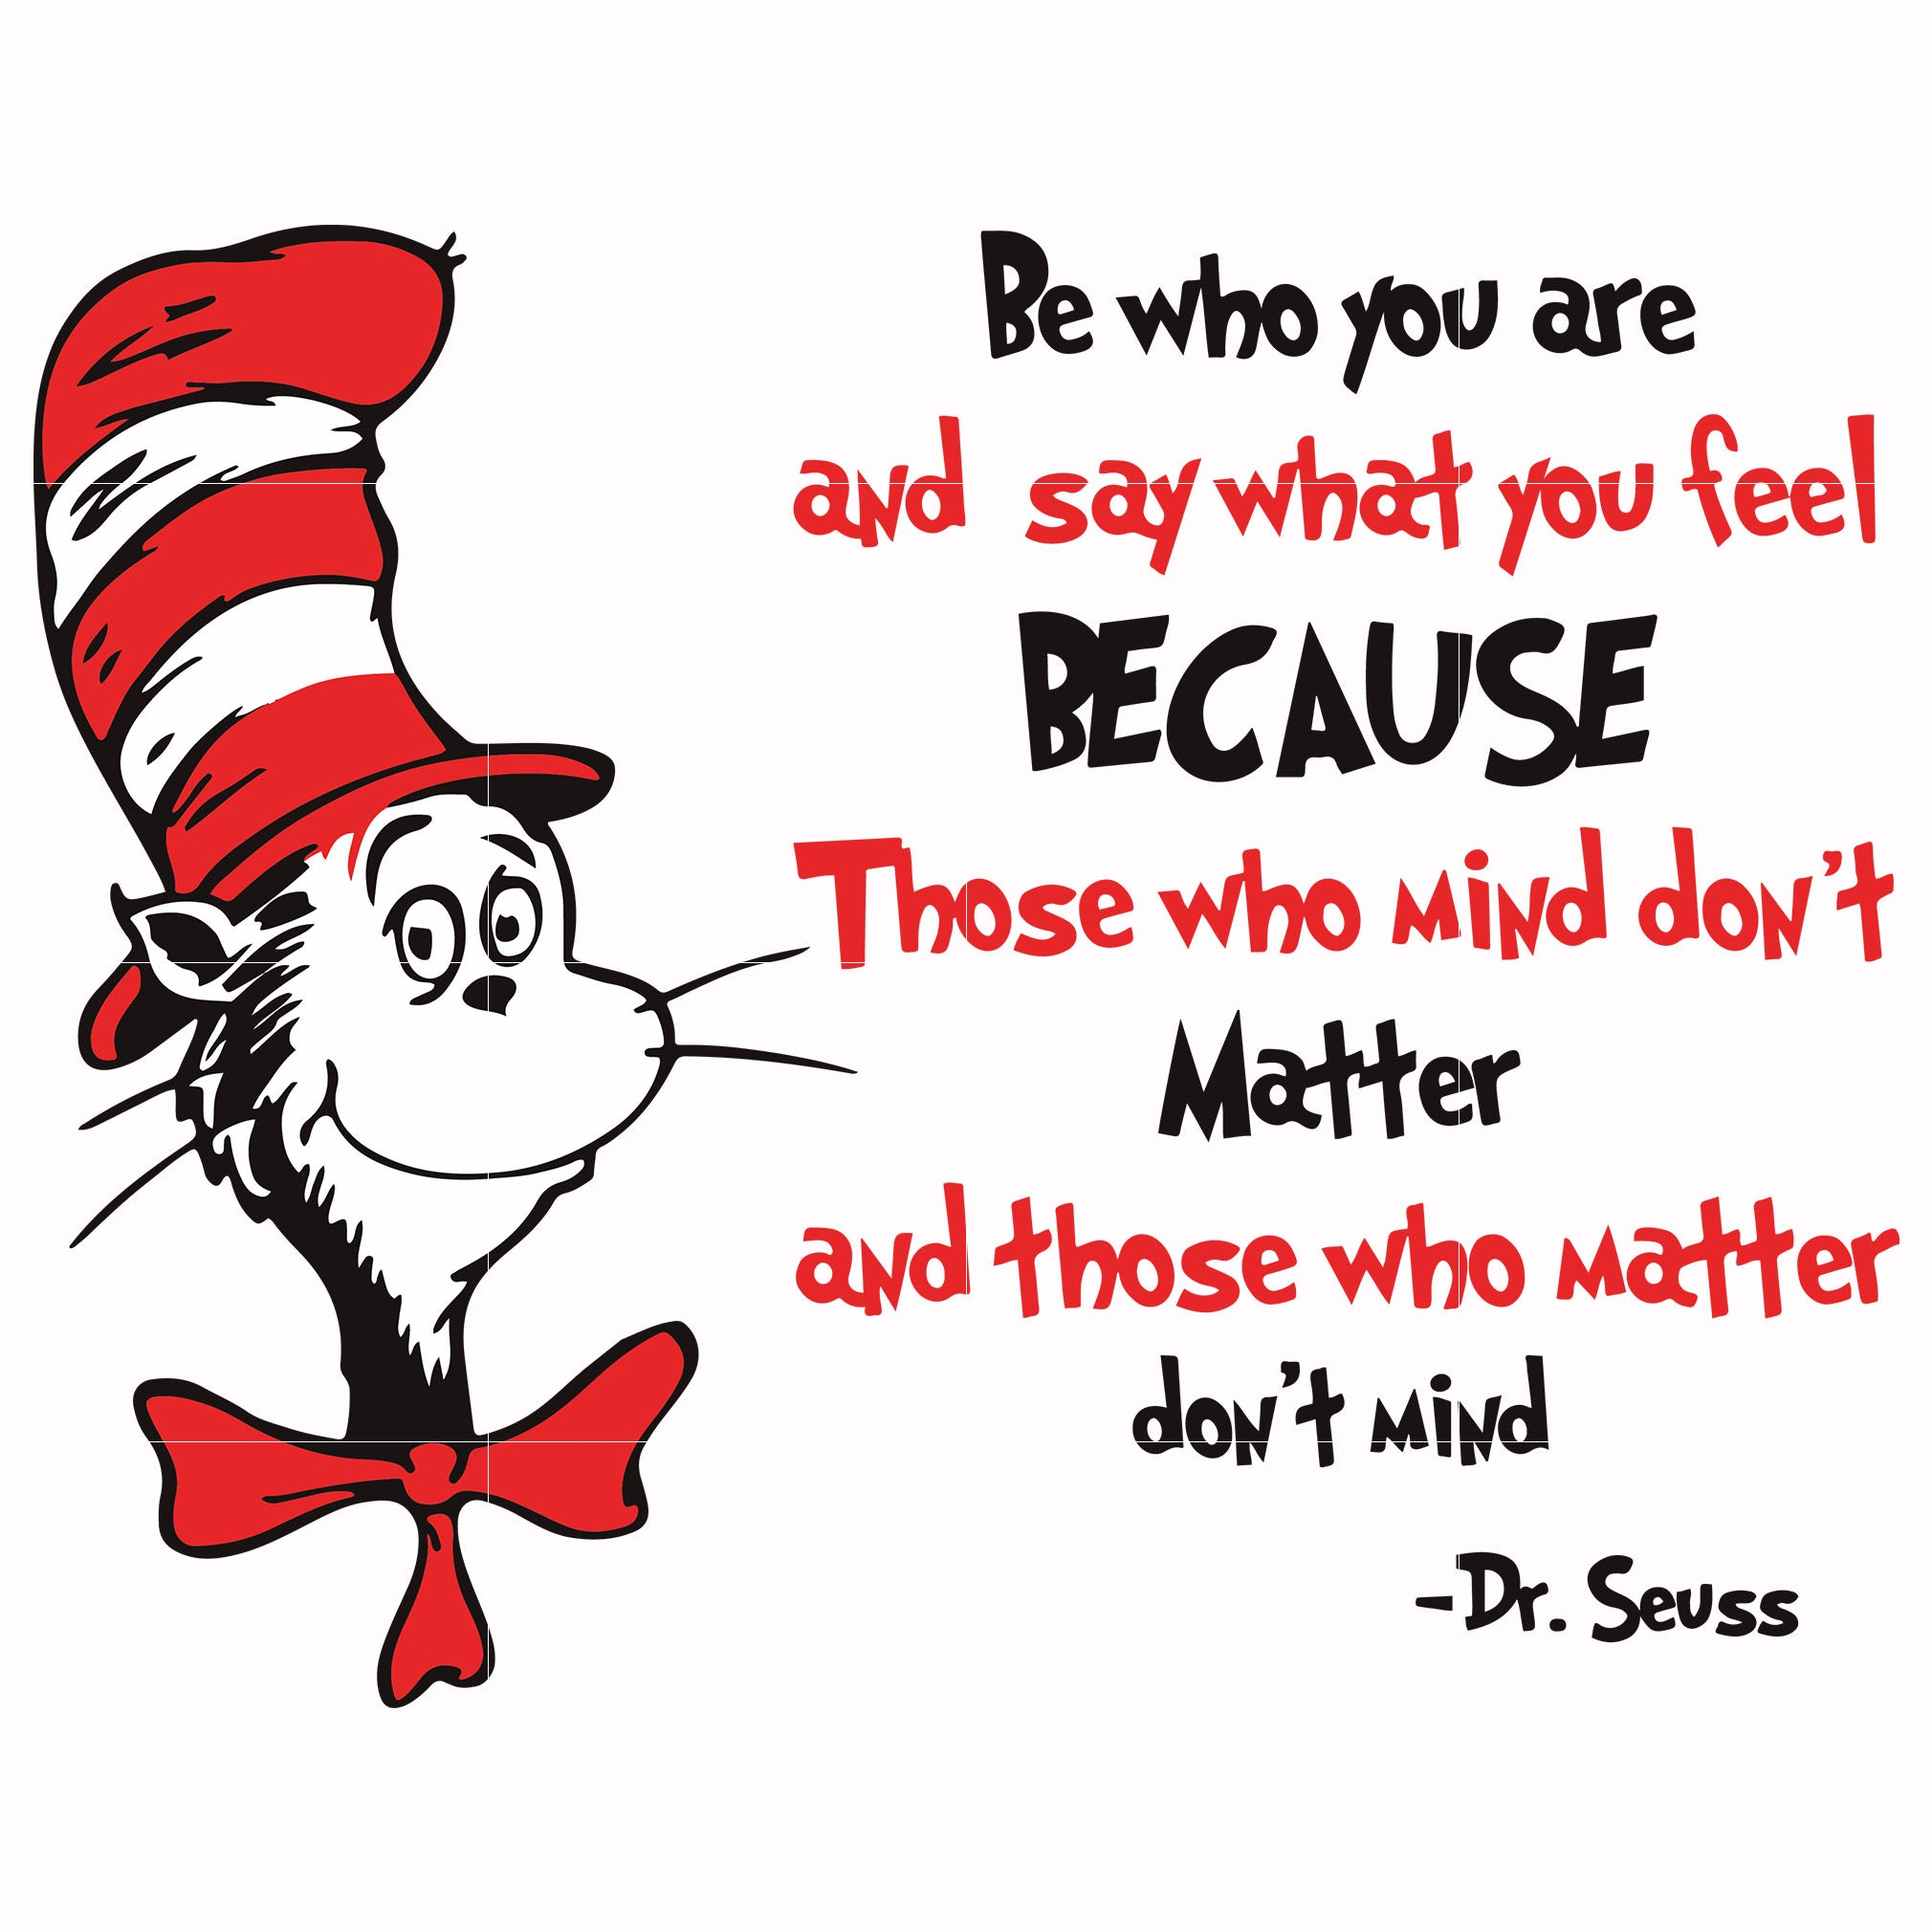 Be who you are and say what you feel, thing one thing two, dr seuss svg, dr seuss quotes, digital file